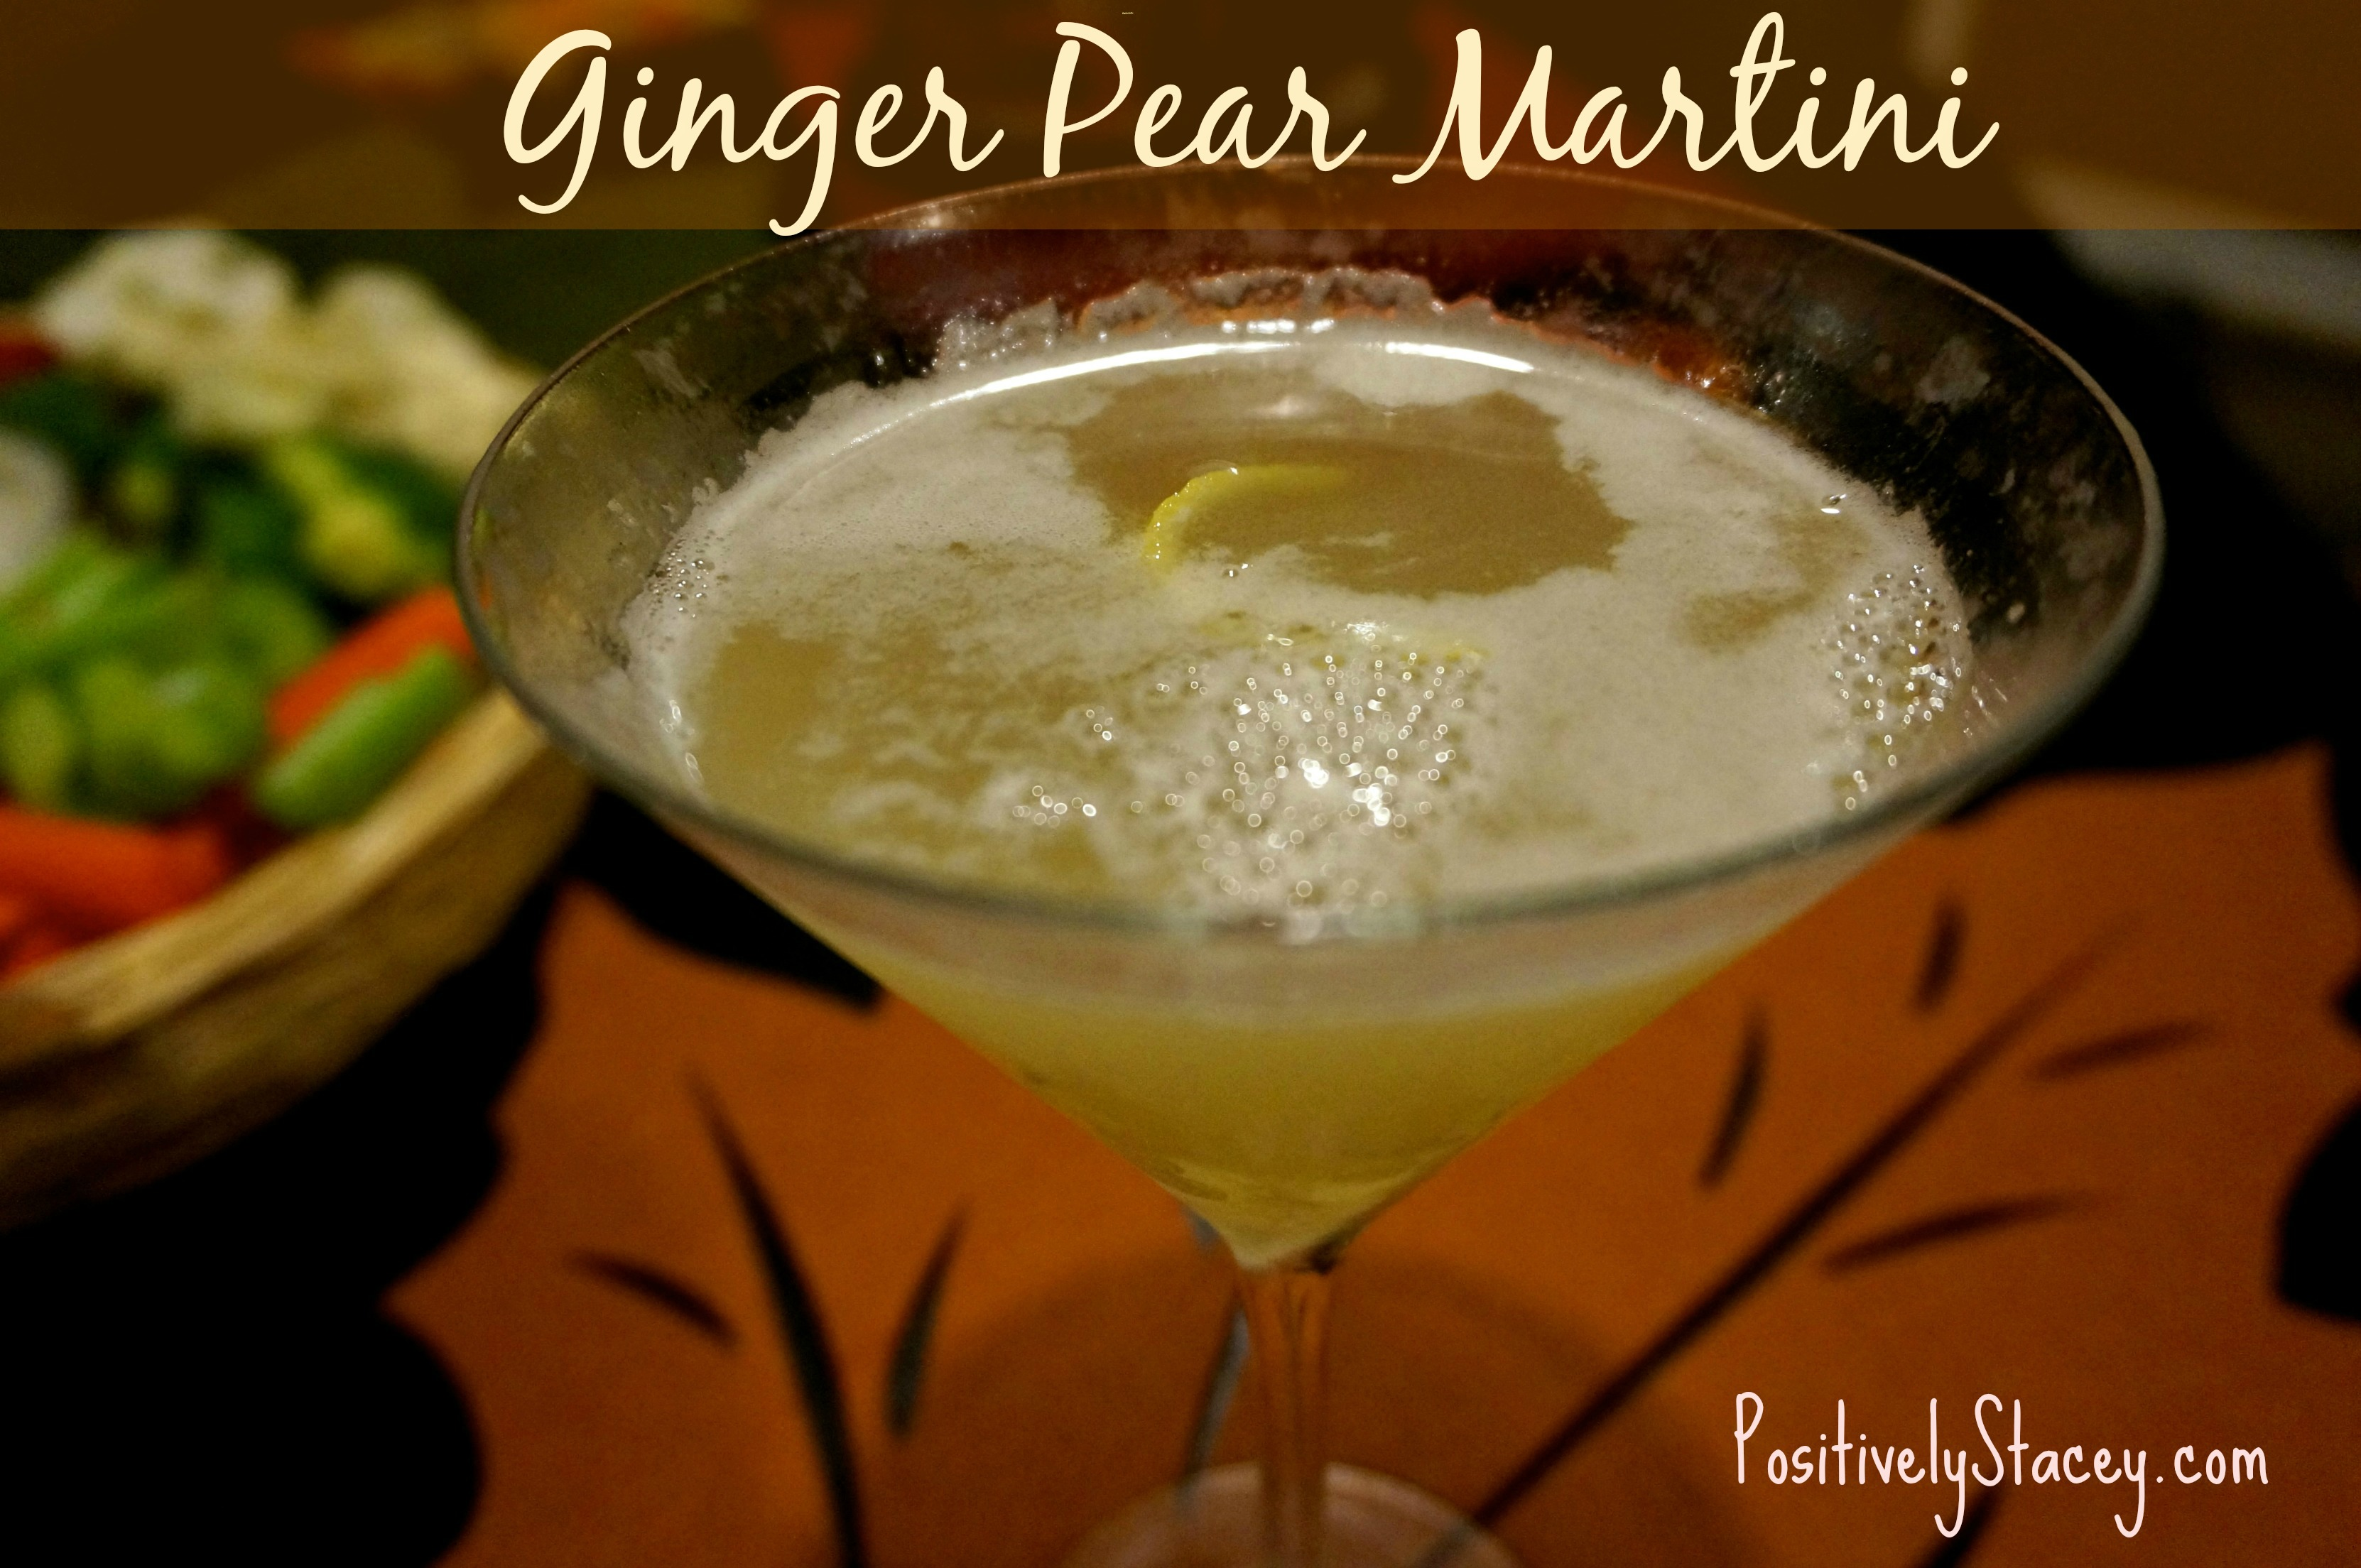 Ginger-Pear-Martini-